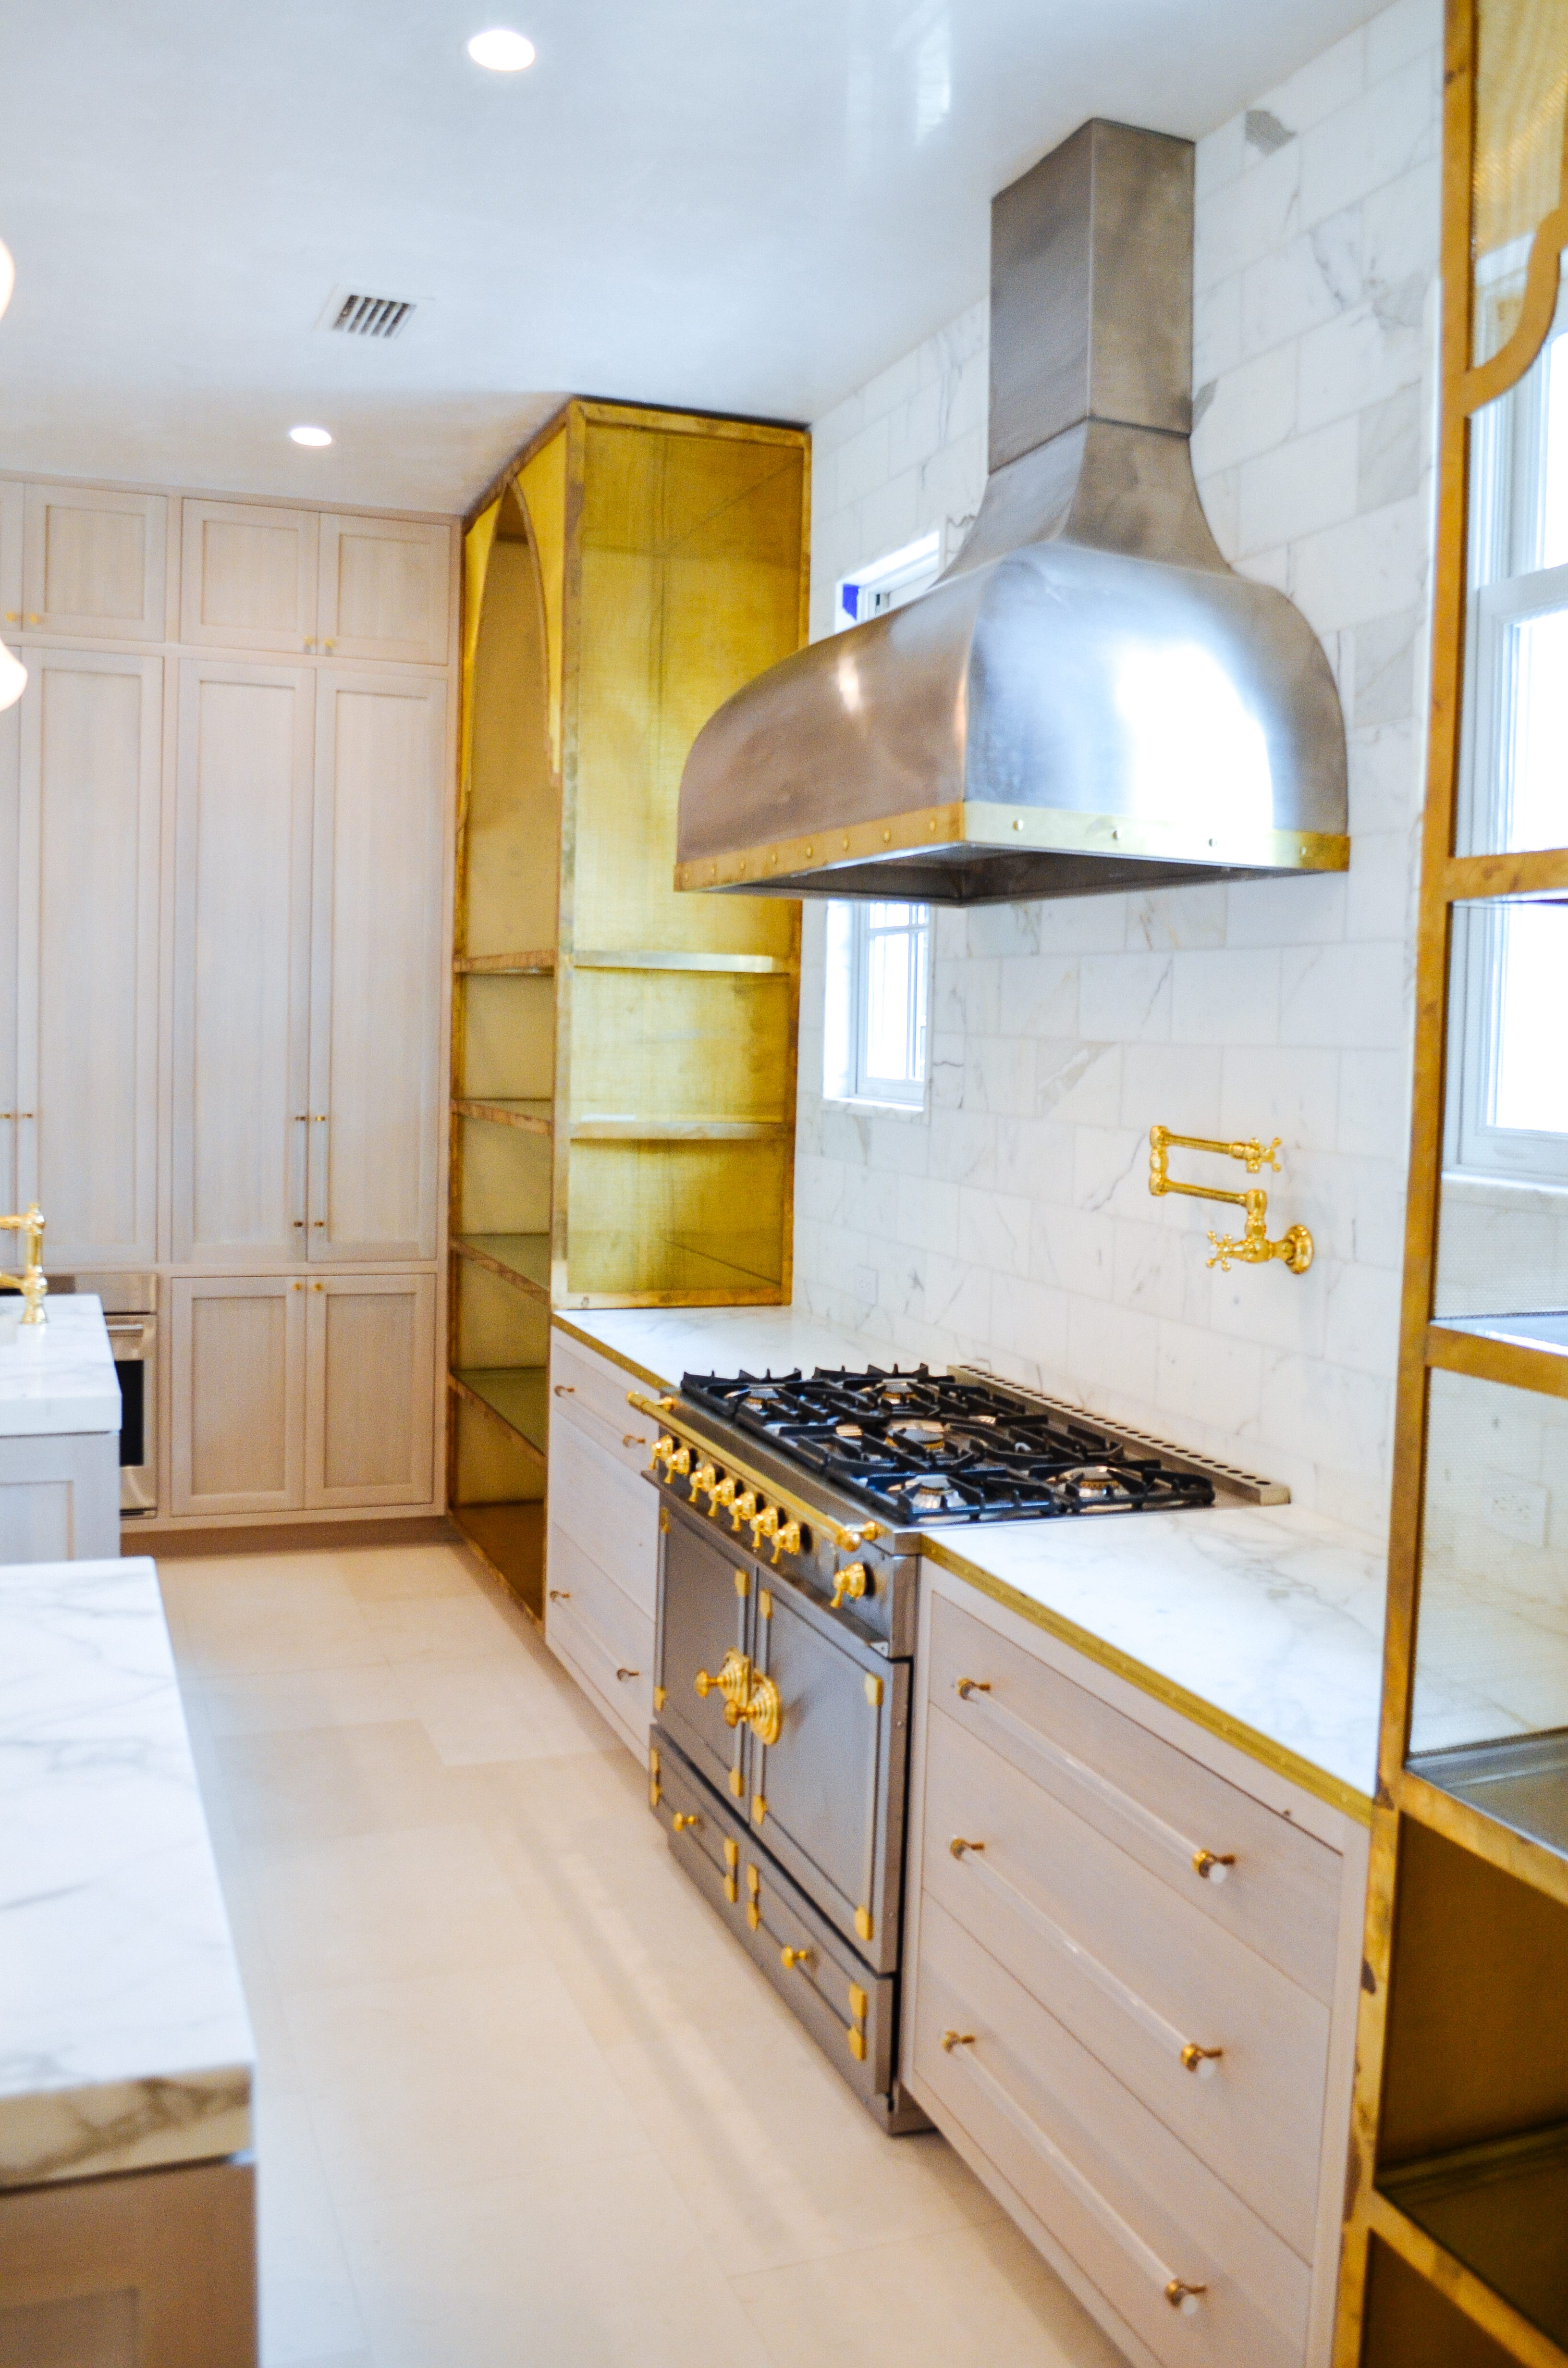 Oak and Brass Kitchen with Stainless Steel Stove